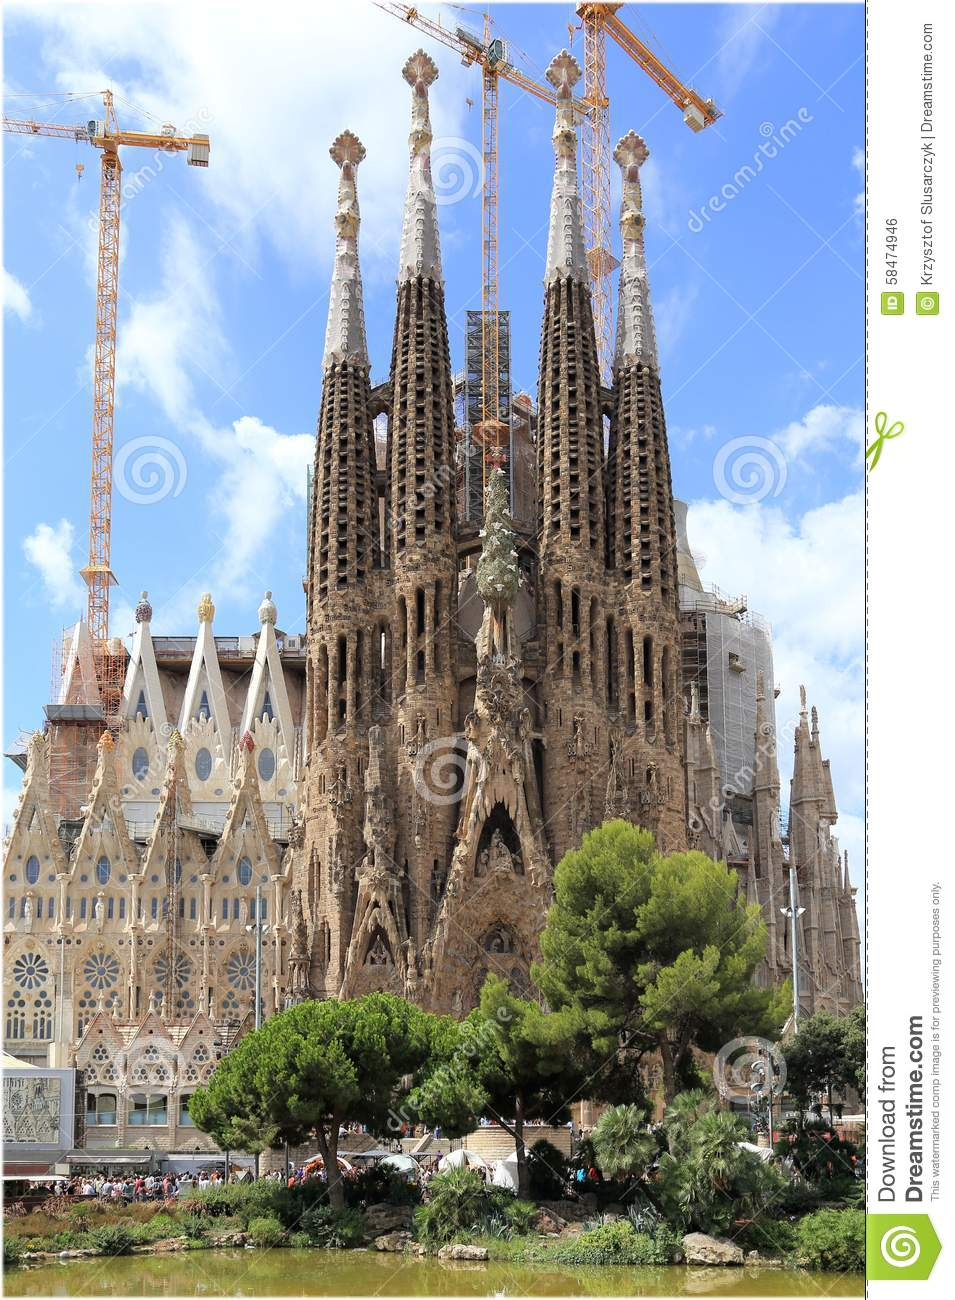 Sagrada Familia Basilica Editorial Photo - Image: 58474946